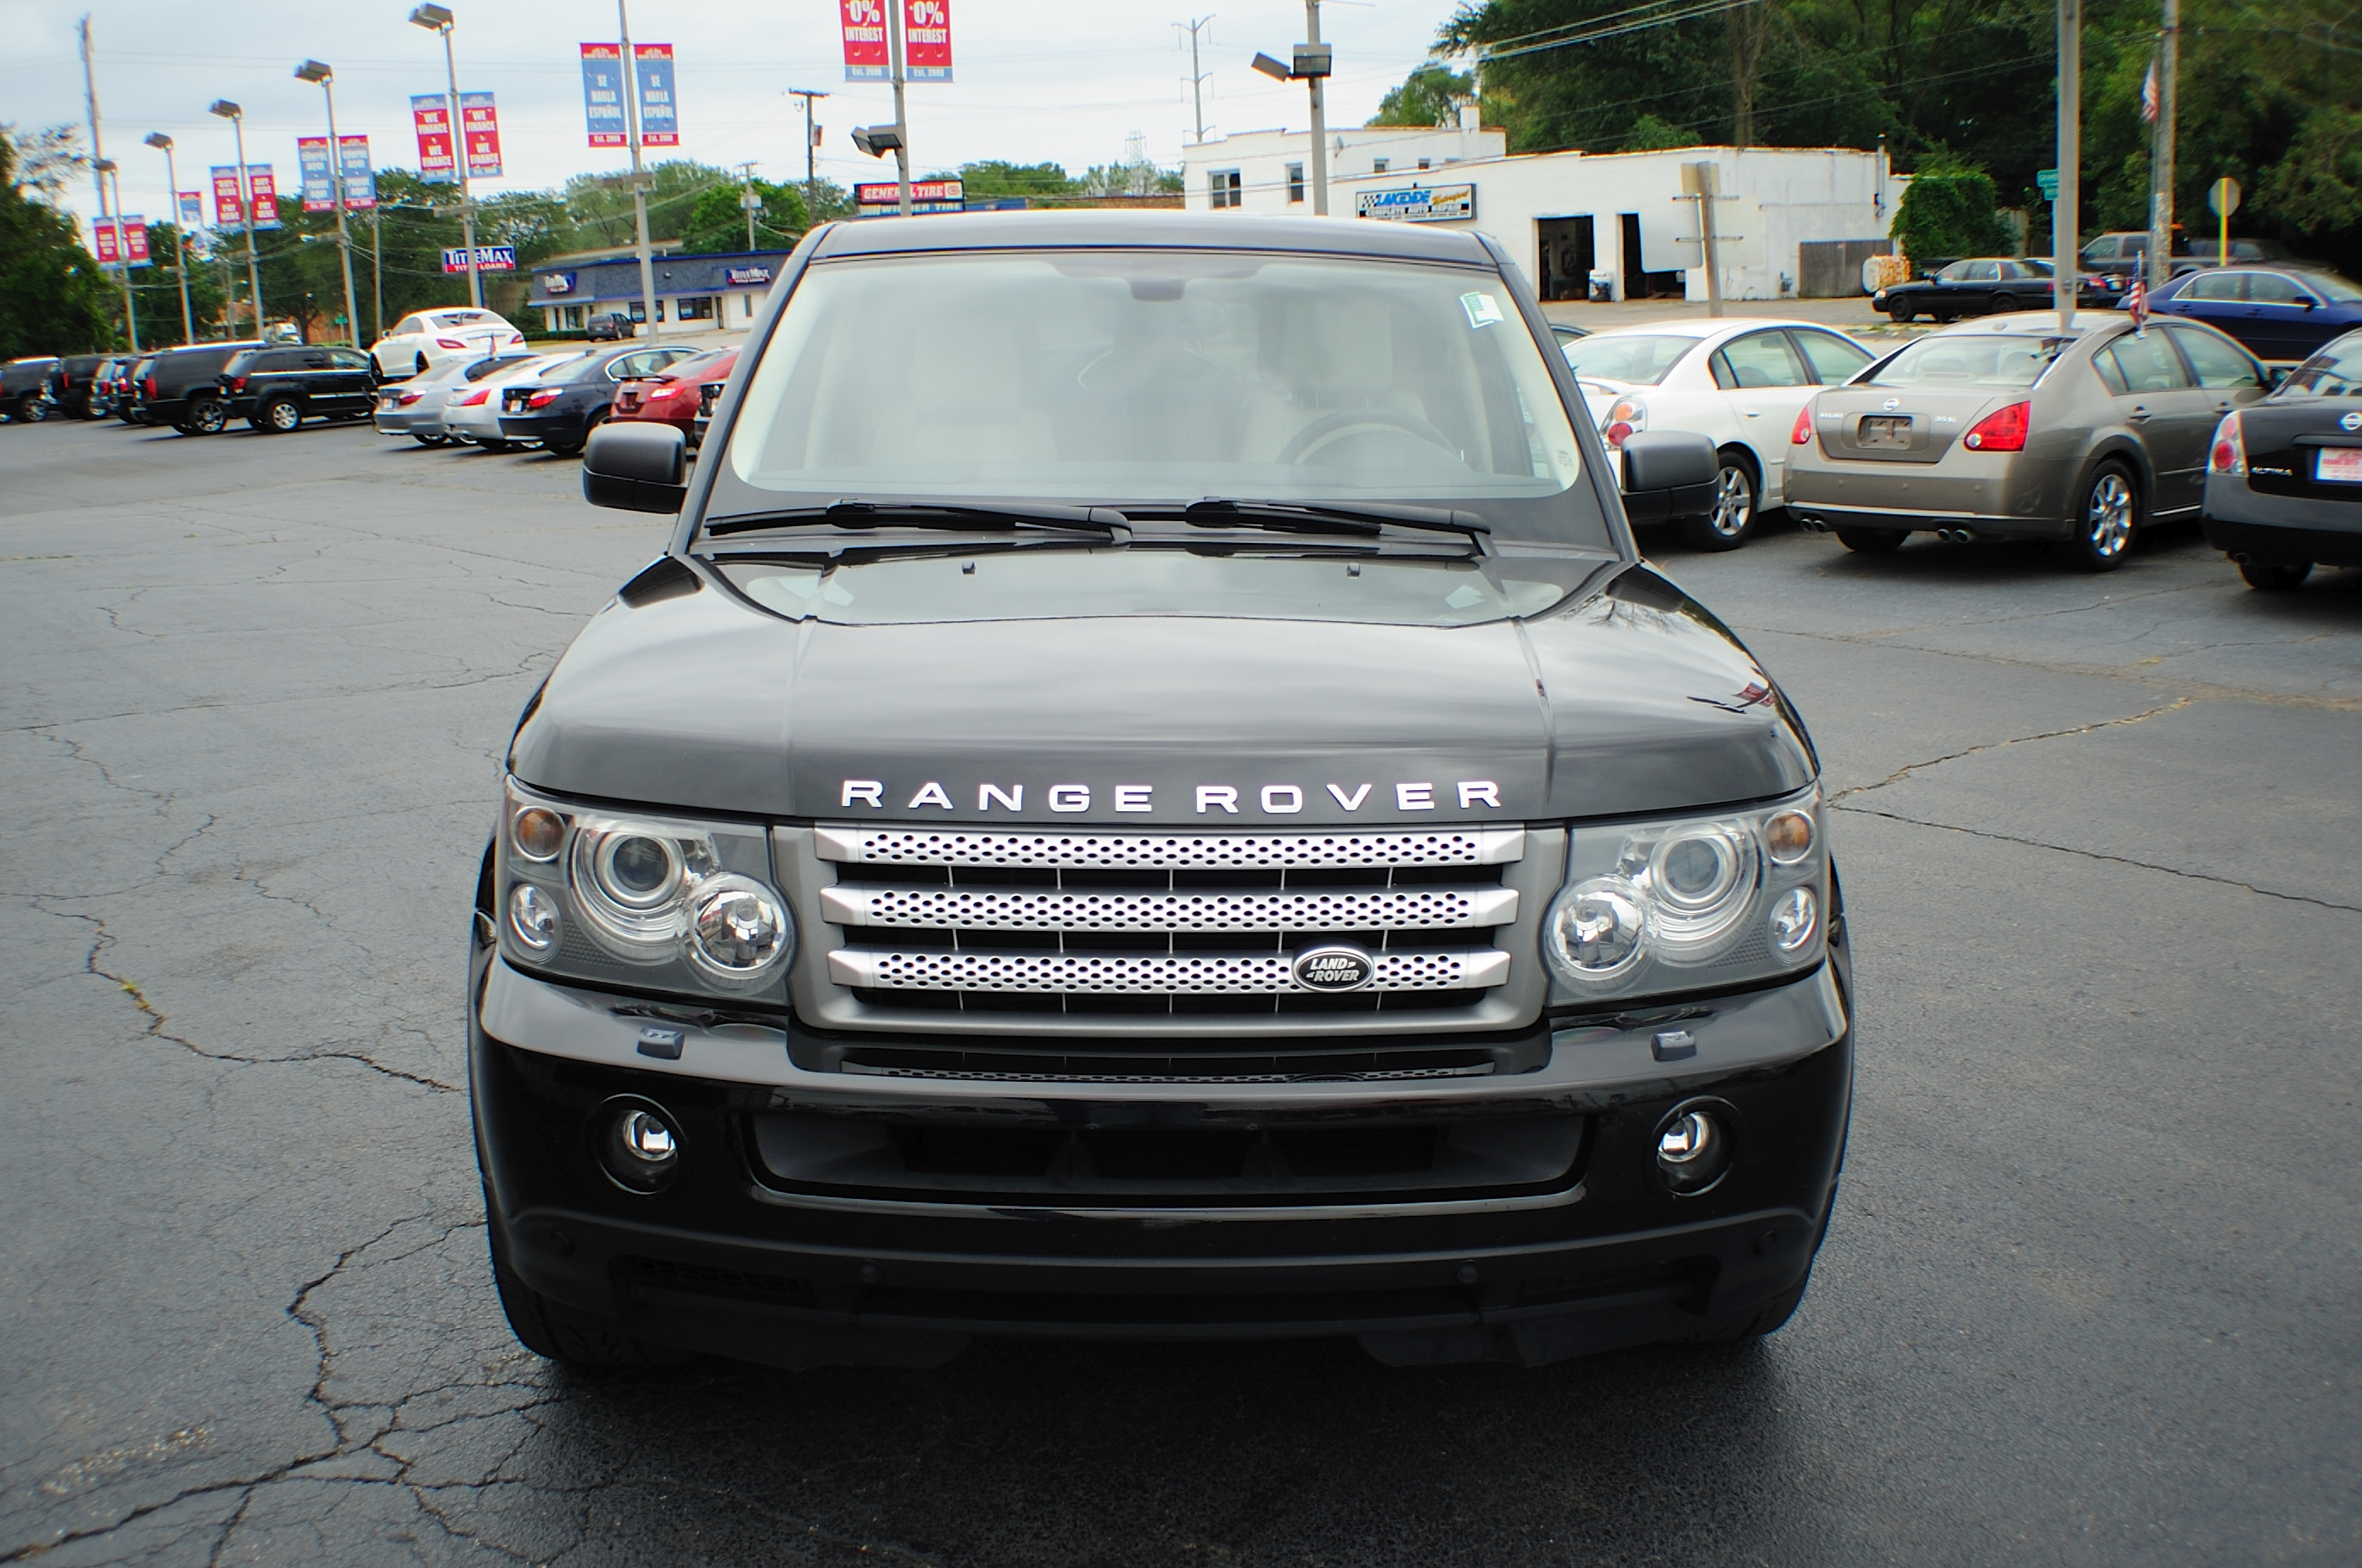 2006 Land Rover Range Rover Black used Sport SUV sale Libertyville Beach Park